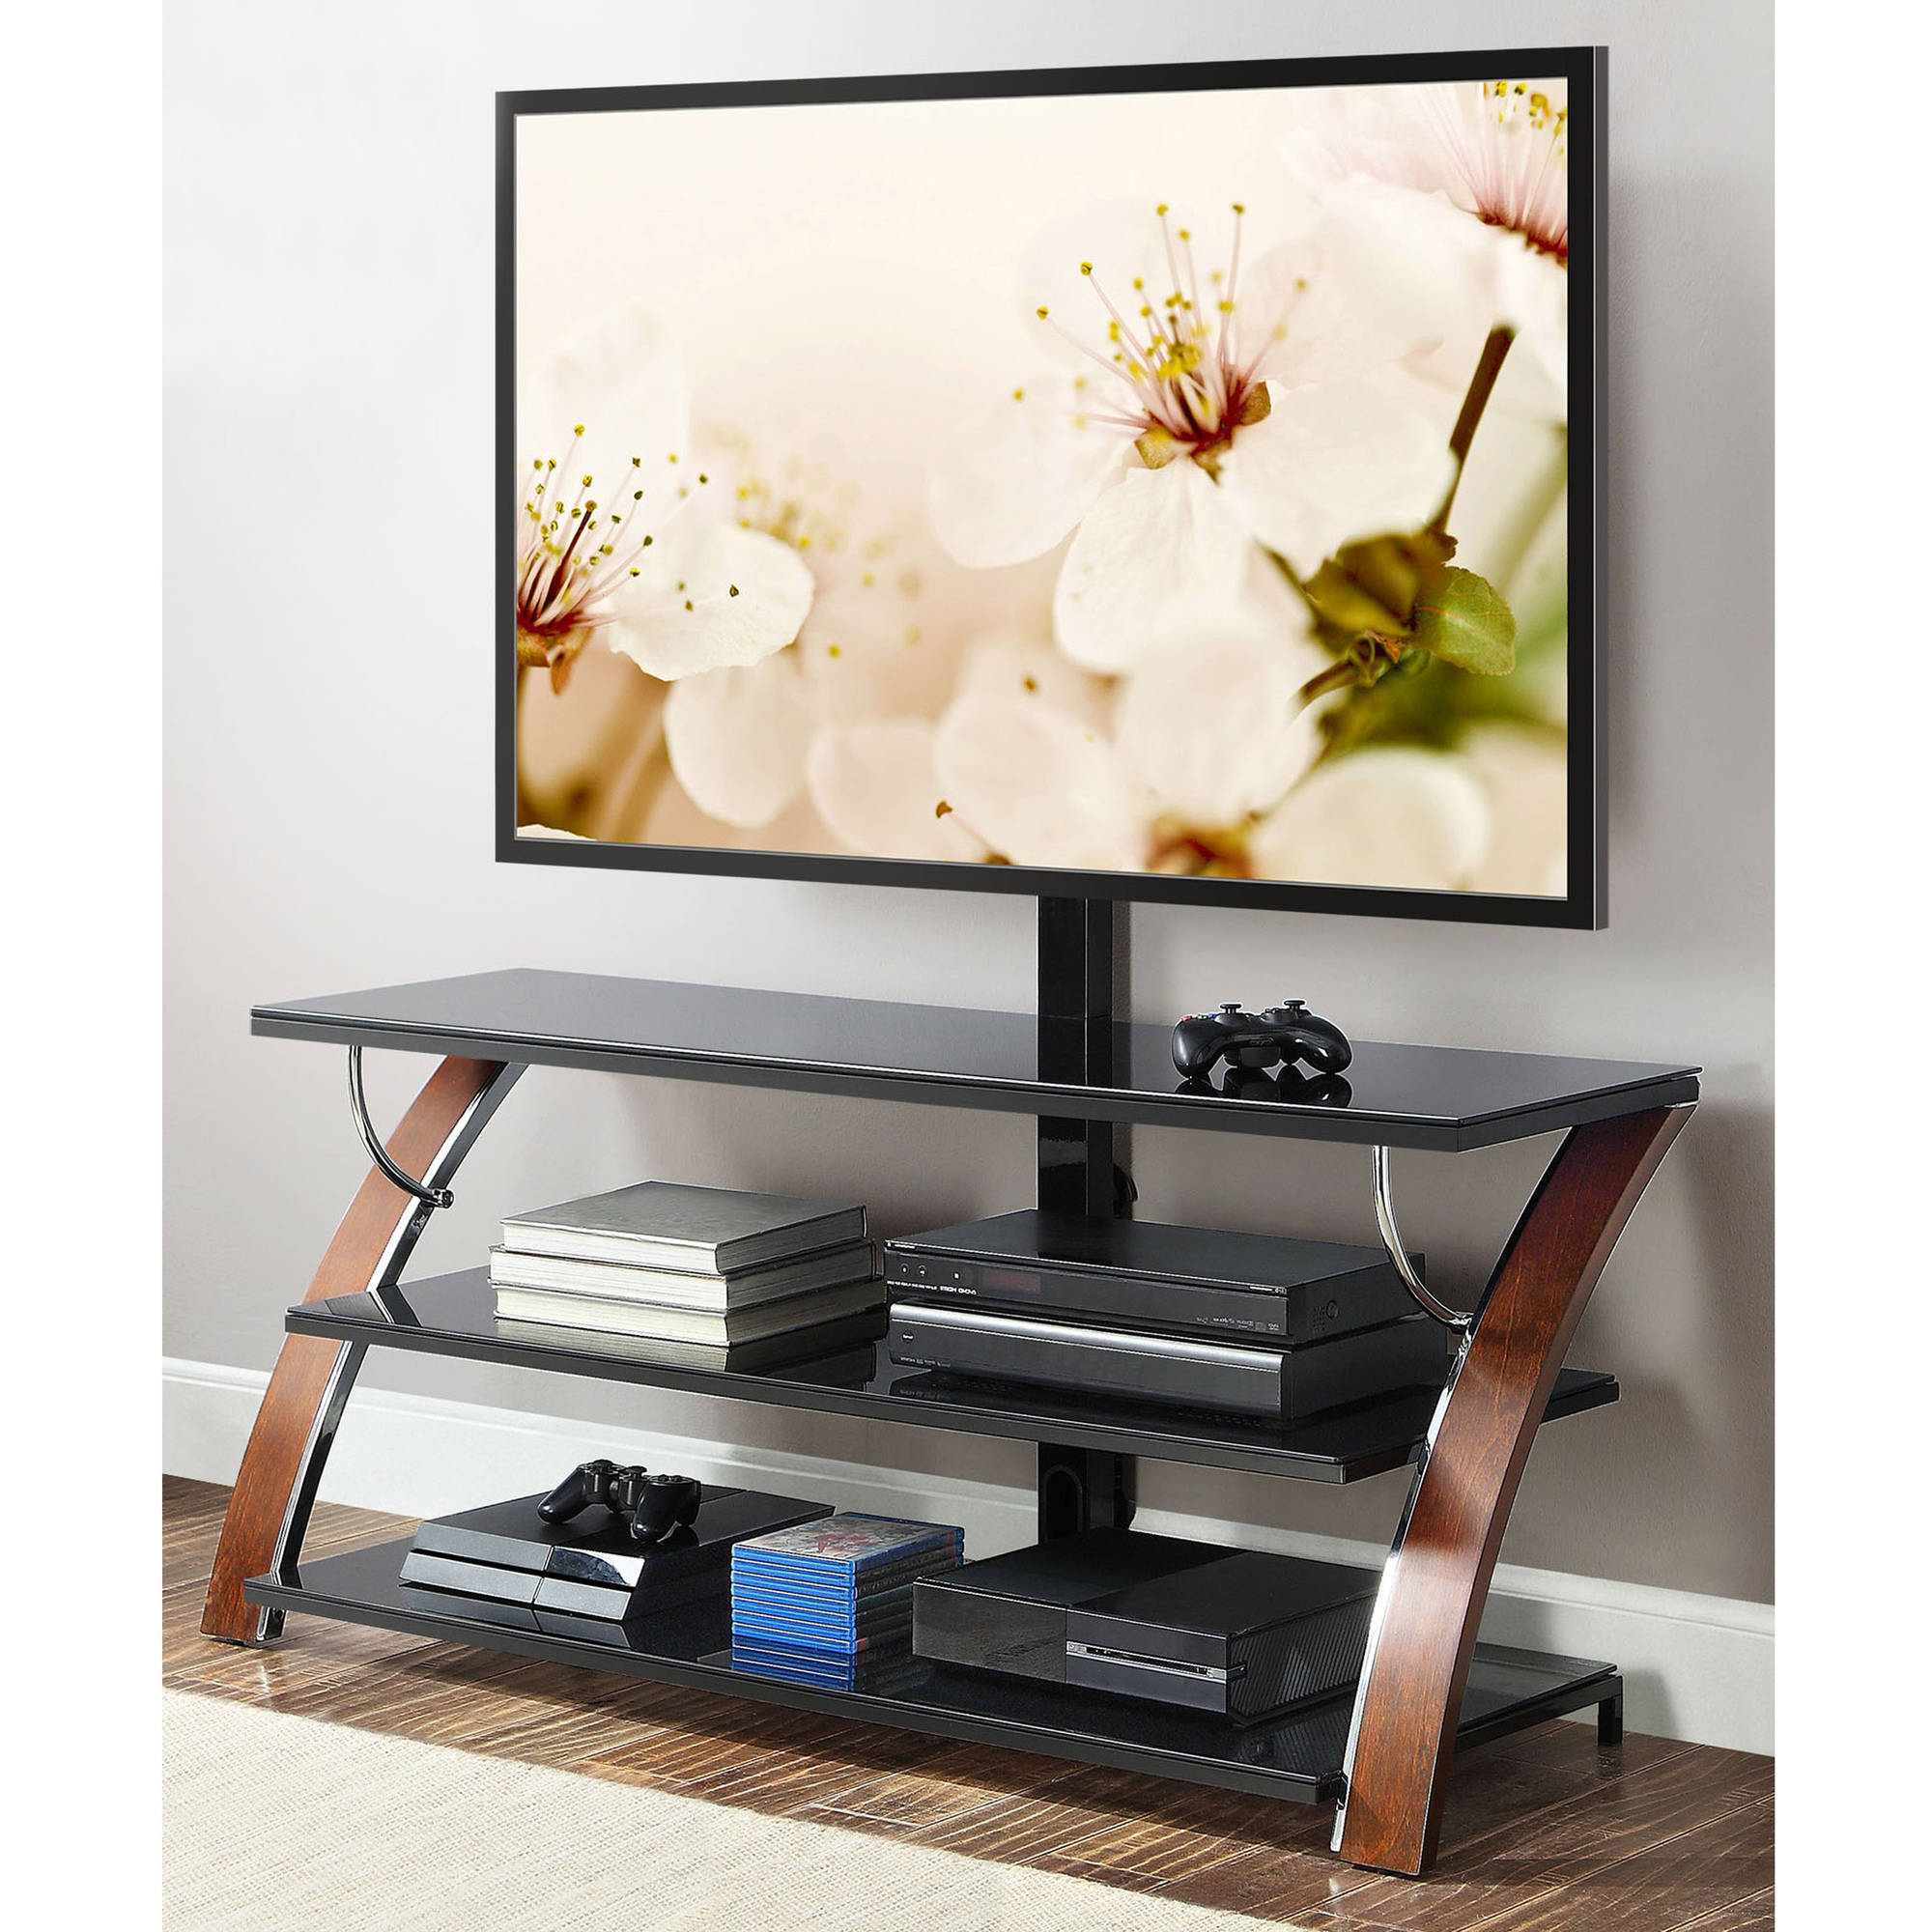 Whalen Brown Cherry 3-in-1 Flat Panel TV Stand for TVs up to 65